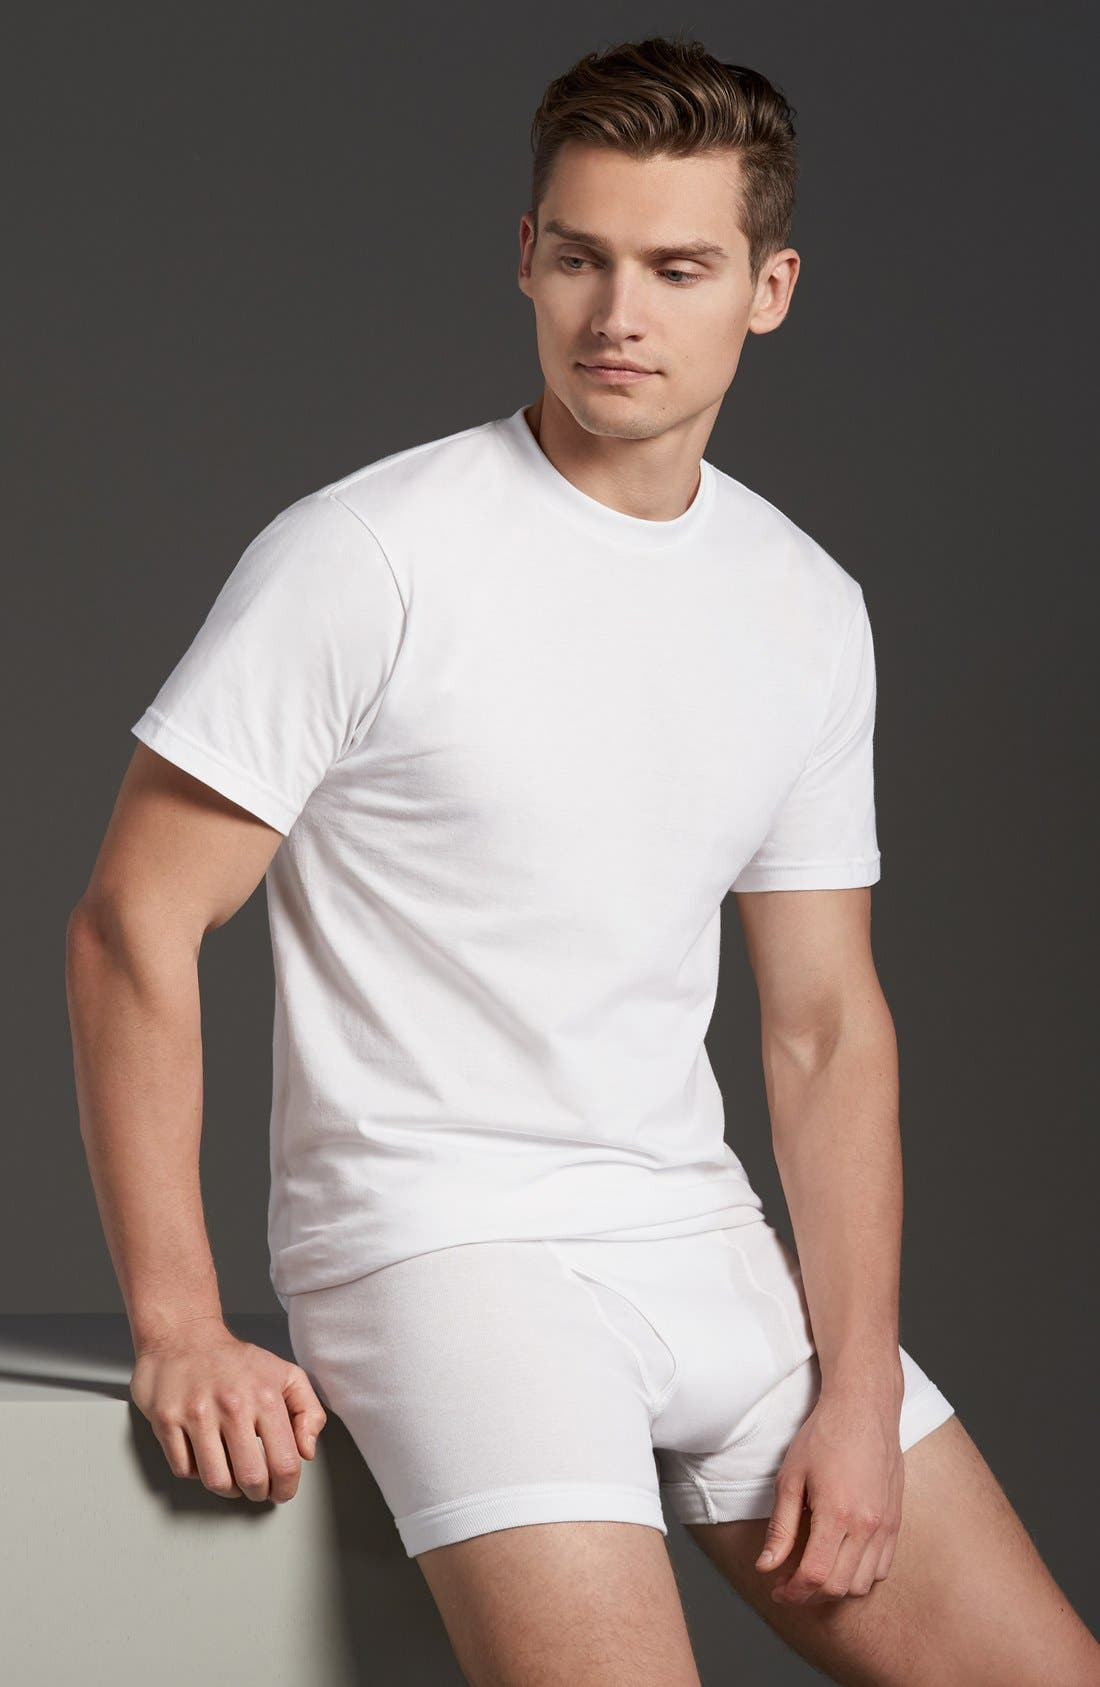 Regular Fit 4-Pack Supima<sup>®</sup> Cotton T-Shirts,                             Alternate thumbnail 10, color,                             WHITE